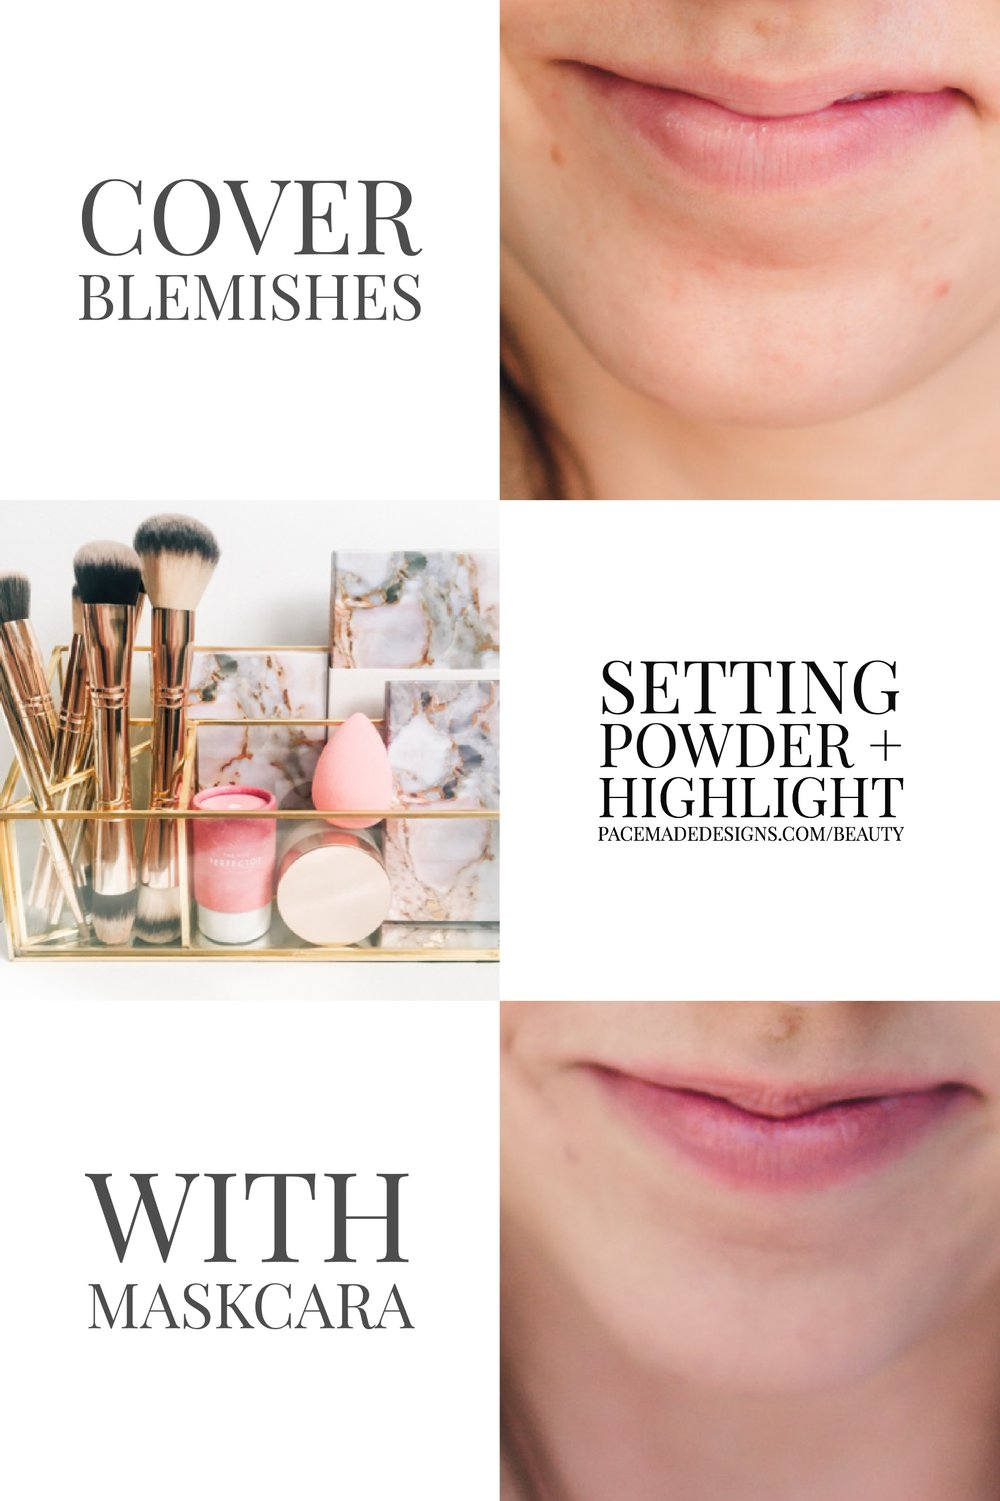 To cover blemishes with Maskcara IIID foundation, all you need is the Highlight you already use and the Vanilla Dust Setting Powder. Use the multi-tasker brush or the highlight side of the 30 second HAC brush and dab the highlight right over any blemishes. Do no blend. Take your powder brush, tap it in the vanilla dust, and tap over the blemish. That's it. Now you're ready to go over all the areas again with your highlight.